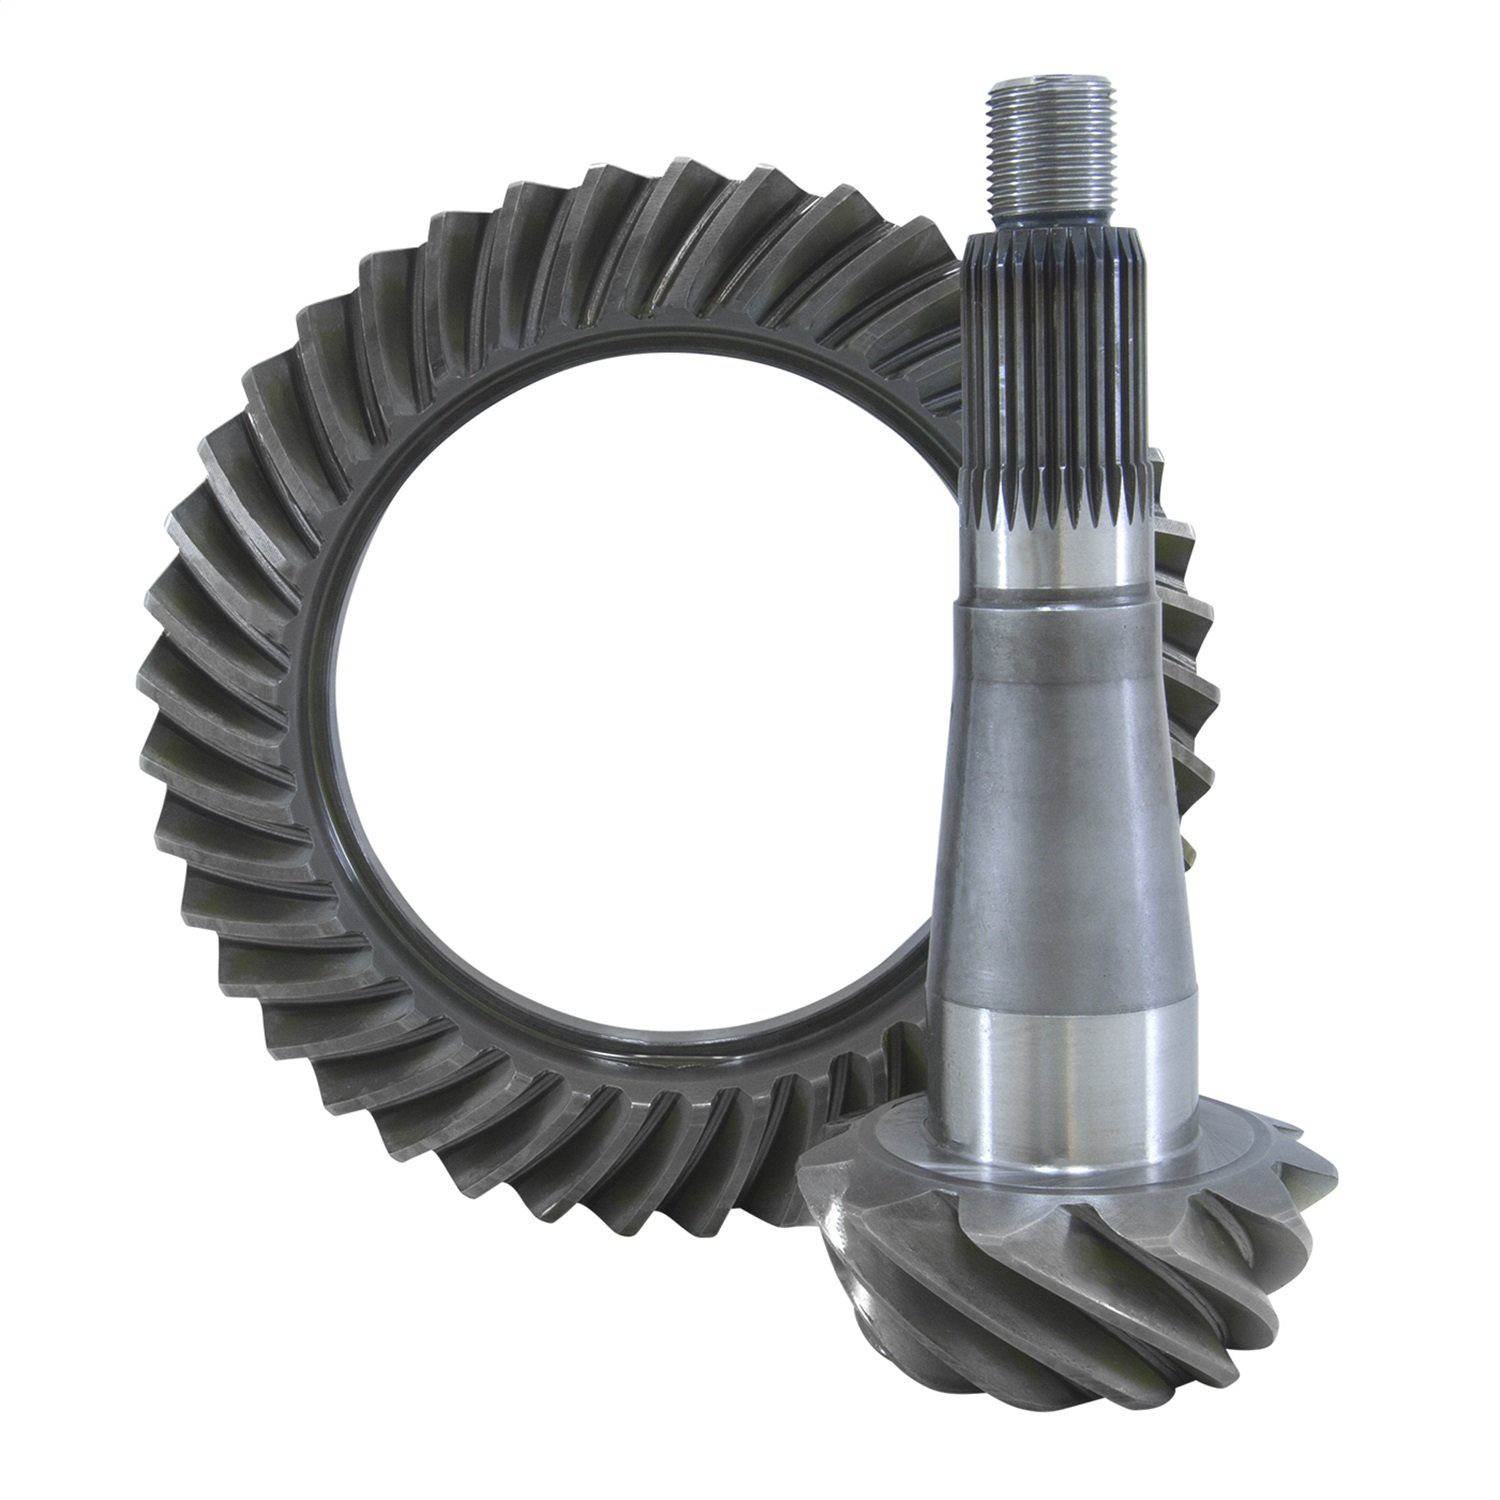 USA Standard Gear (ZG C8.89-355) Ring and Pinion Gear Set for Chrysler 8.75' Differential 89-Case Housing ZGC8.89-355